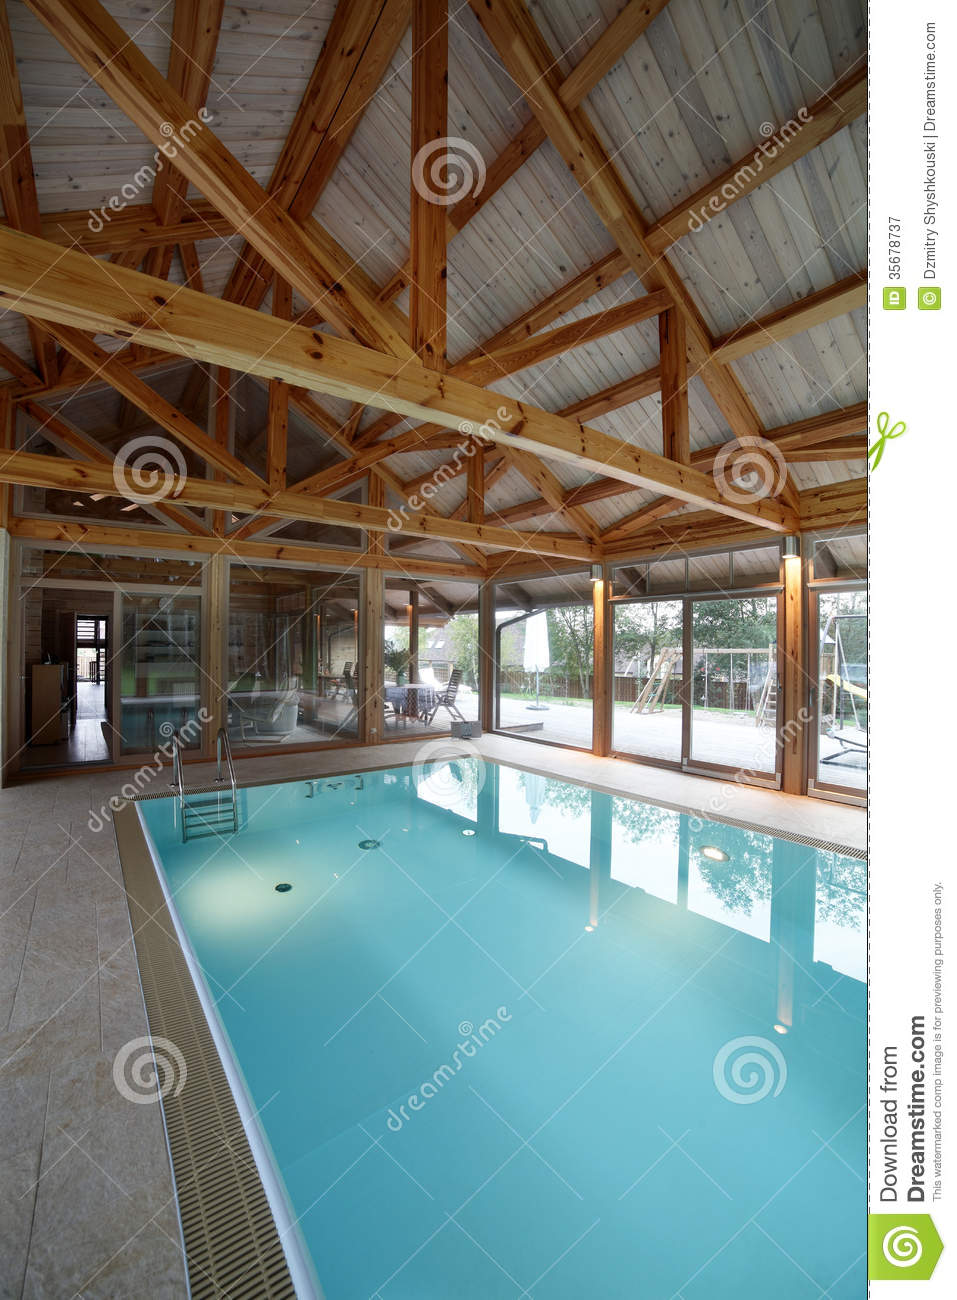 Interior Of Swimming Pool Inside Of House Royalty Free